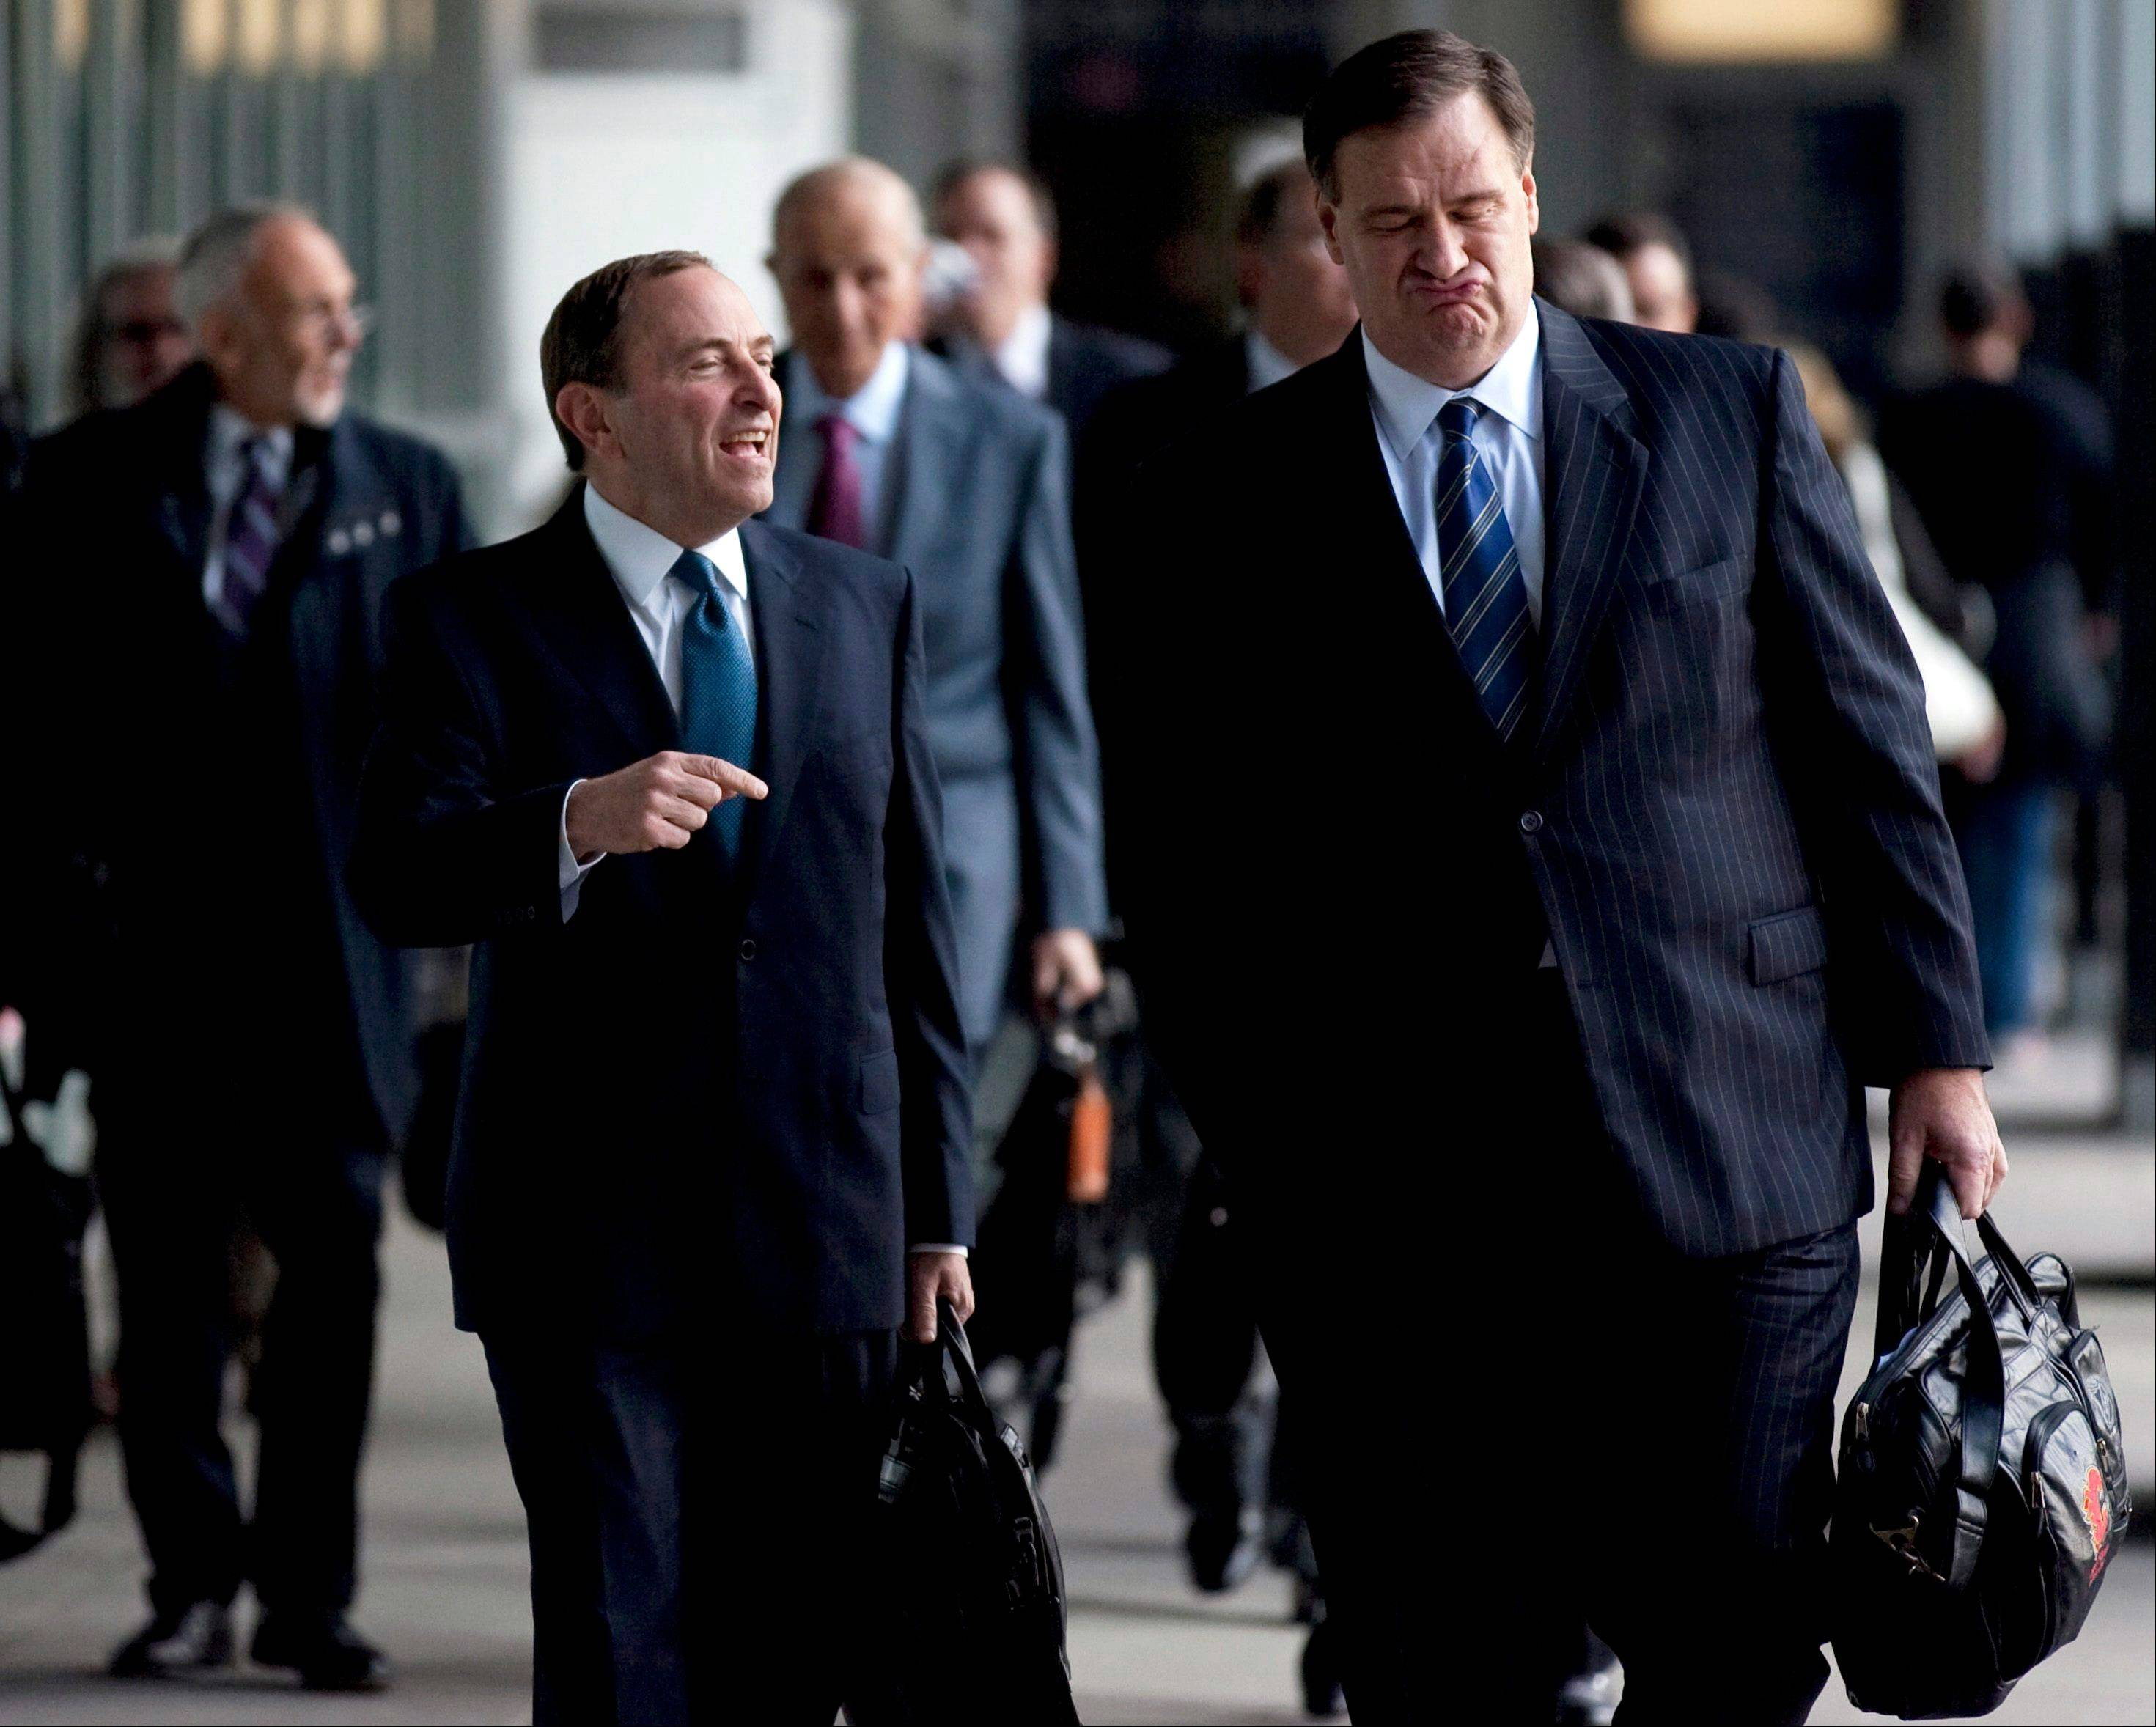 NHL Commissioner Gary Bettman, left foreground, and Calgary Flames co-owner Murray Edwards arrive for negotiations with the NHL Players Association in Toronto Thursday.